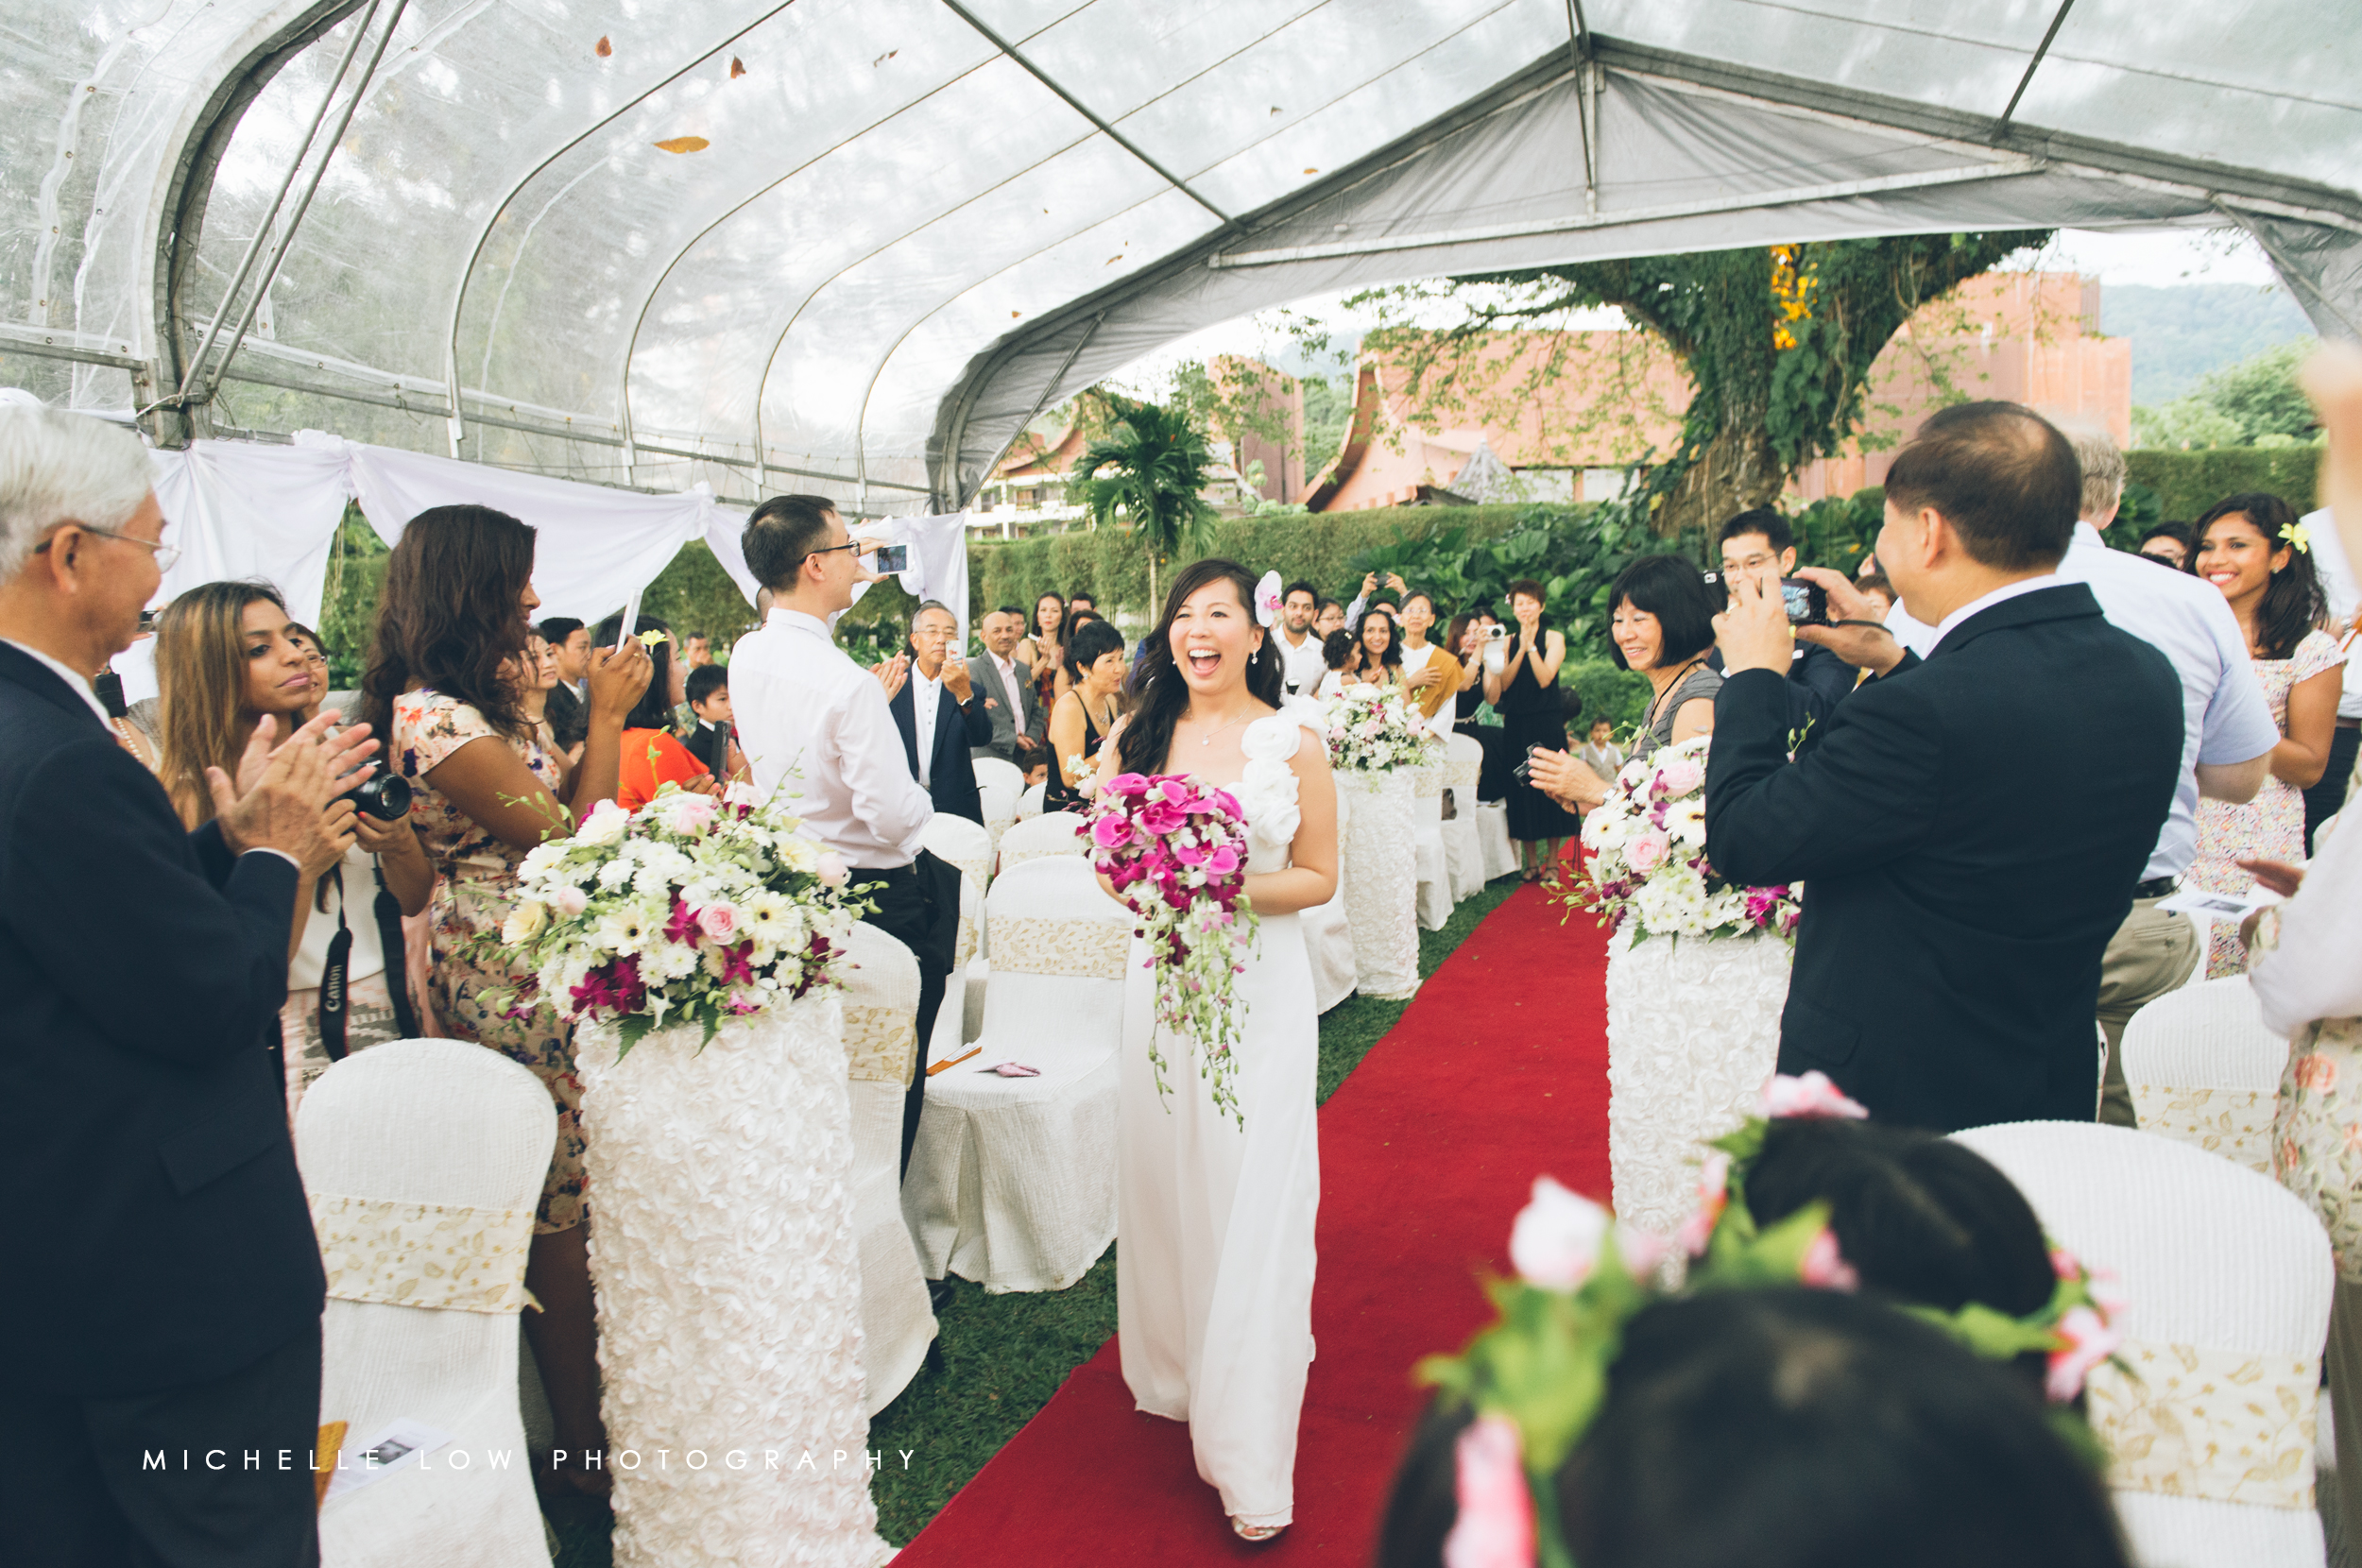 Tying the knot: Jun & En Qi